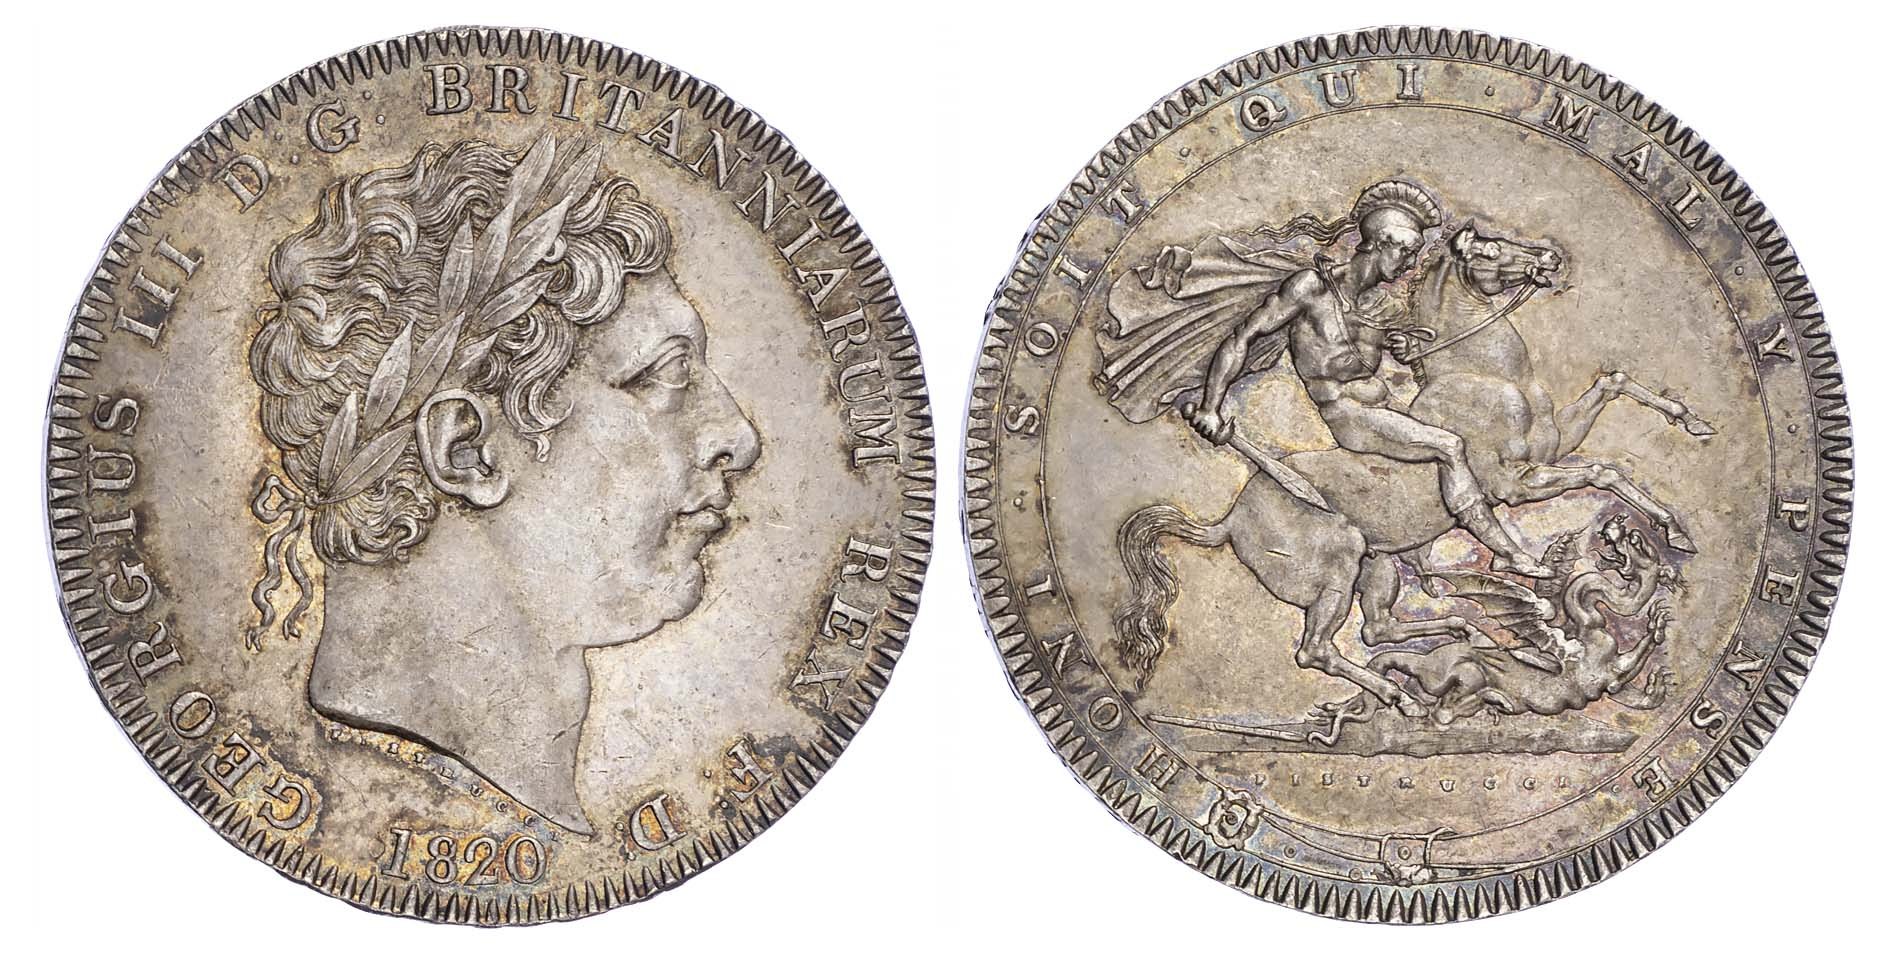 George III (1760-1820), Crown, 1820, LX edge